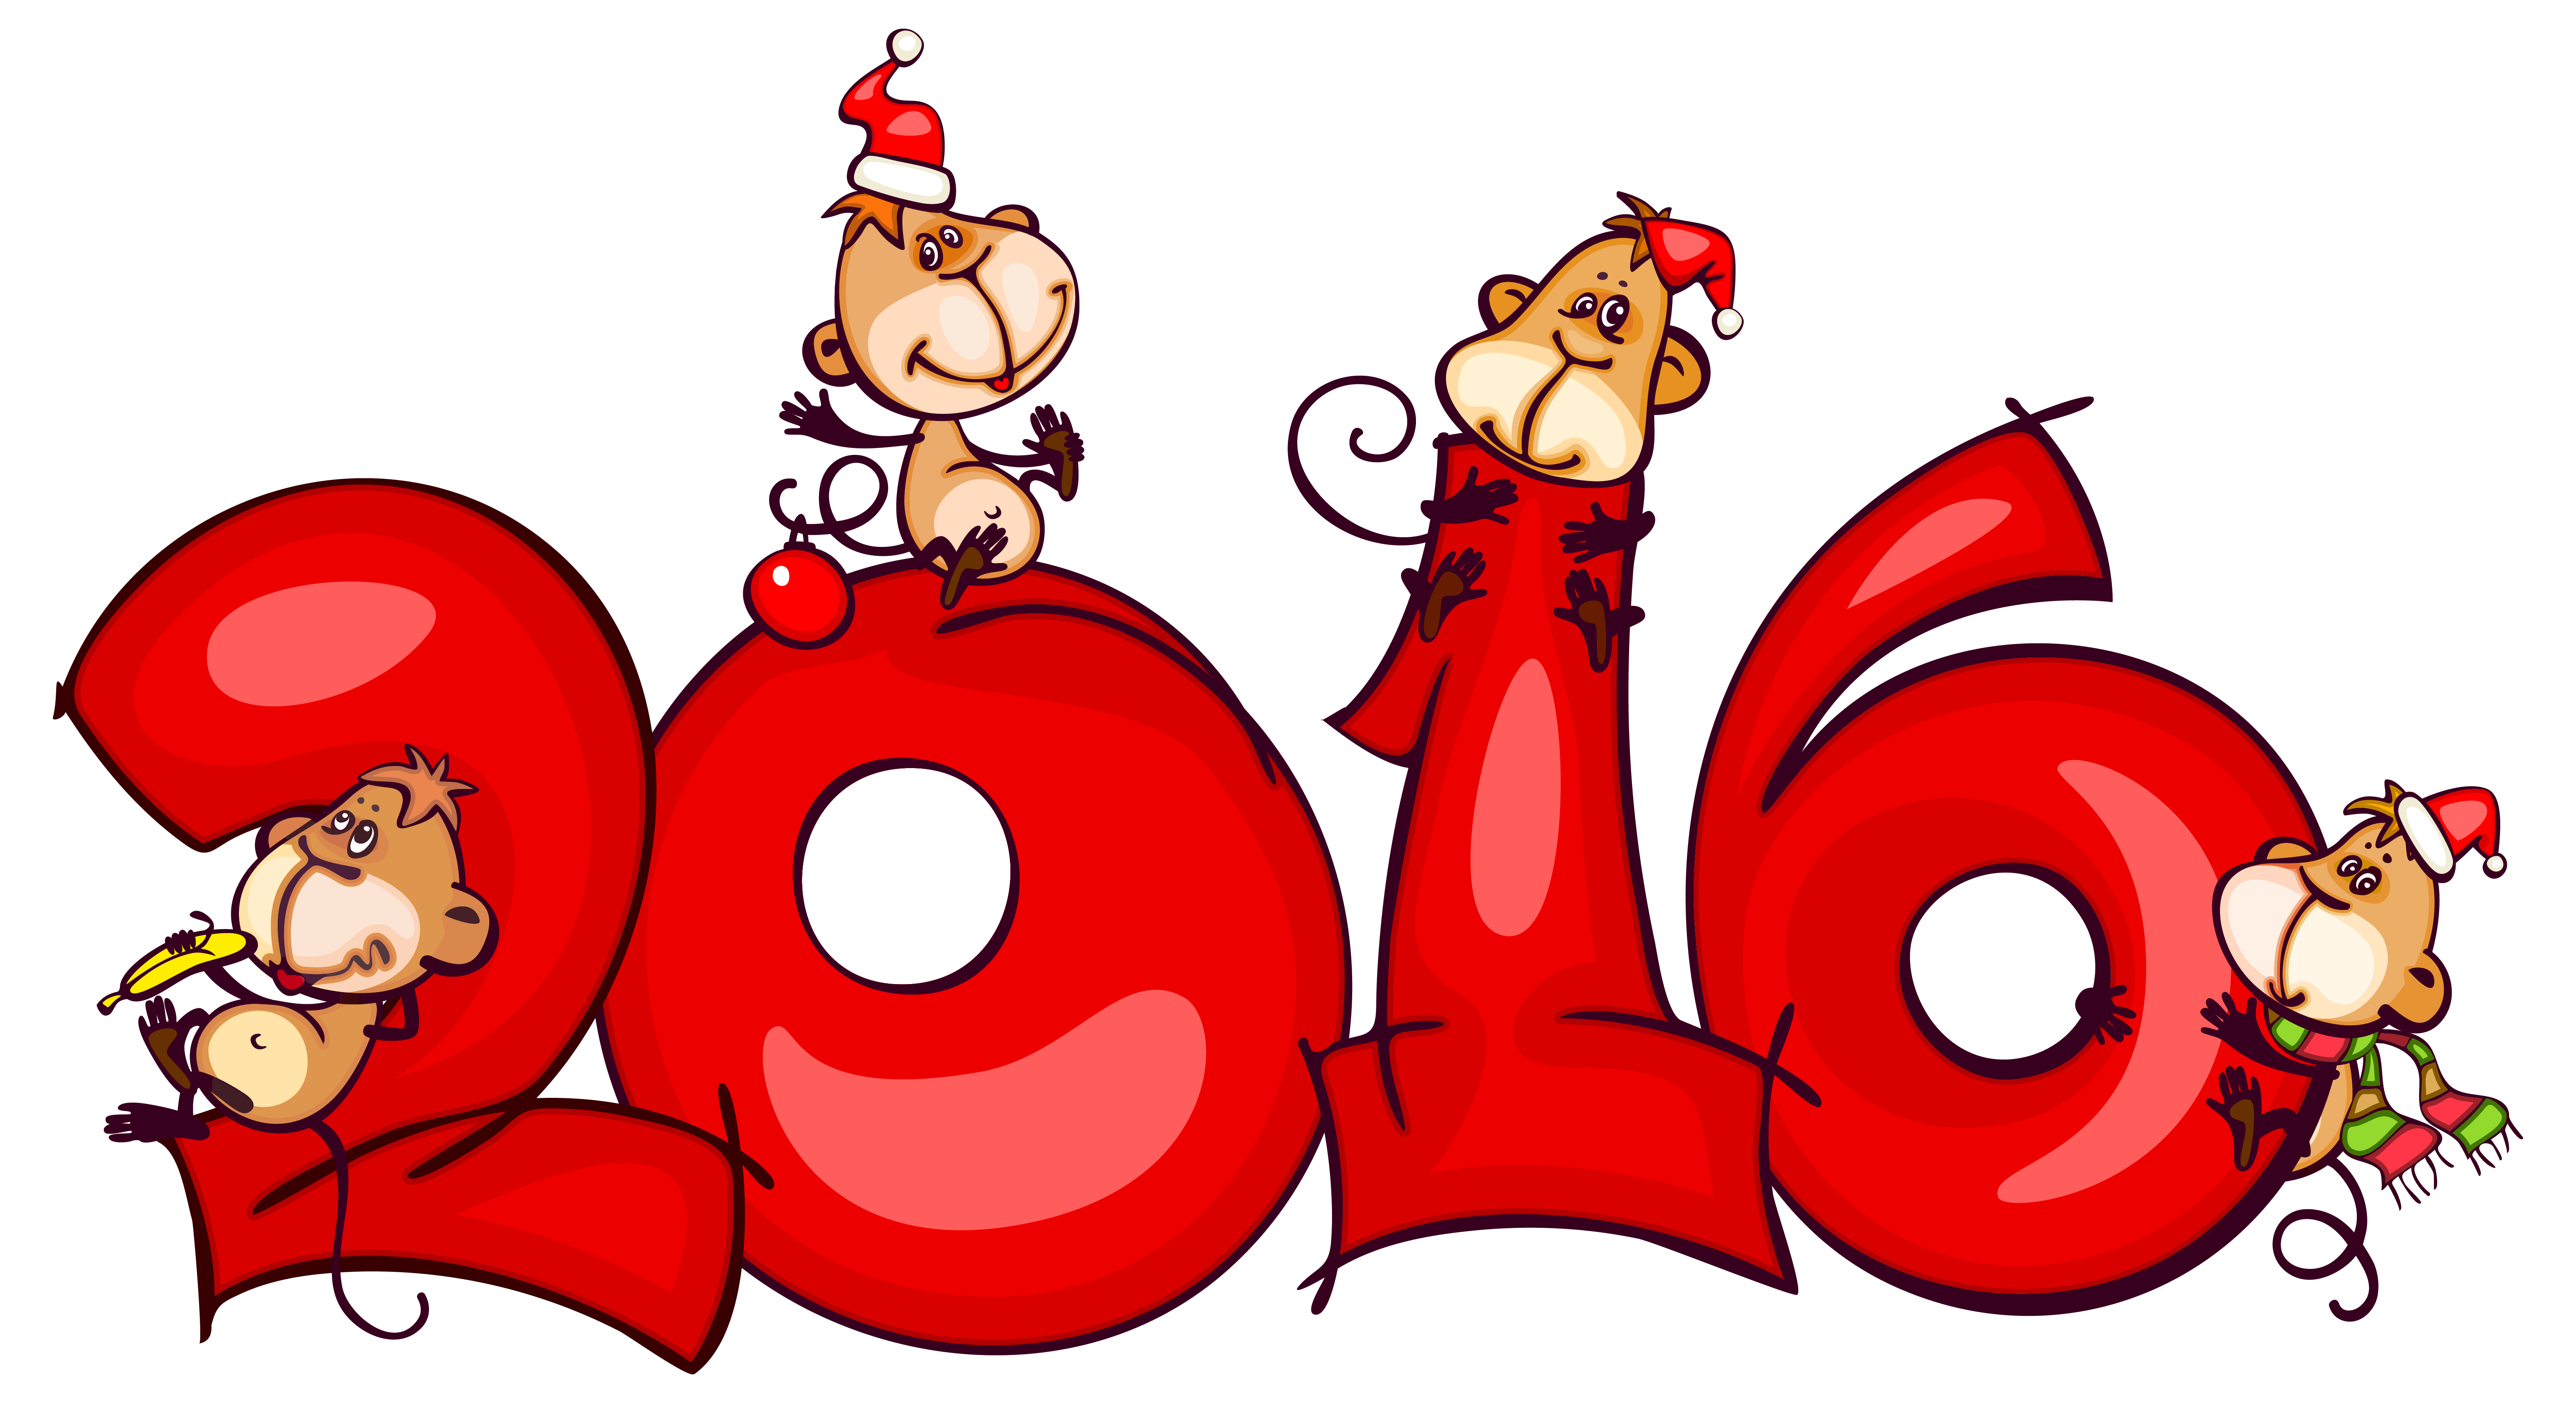 with monkeys png. 2016 clipart picture royalty free download